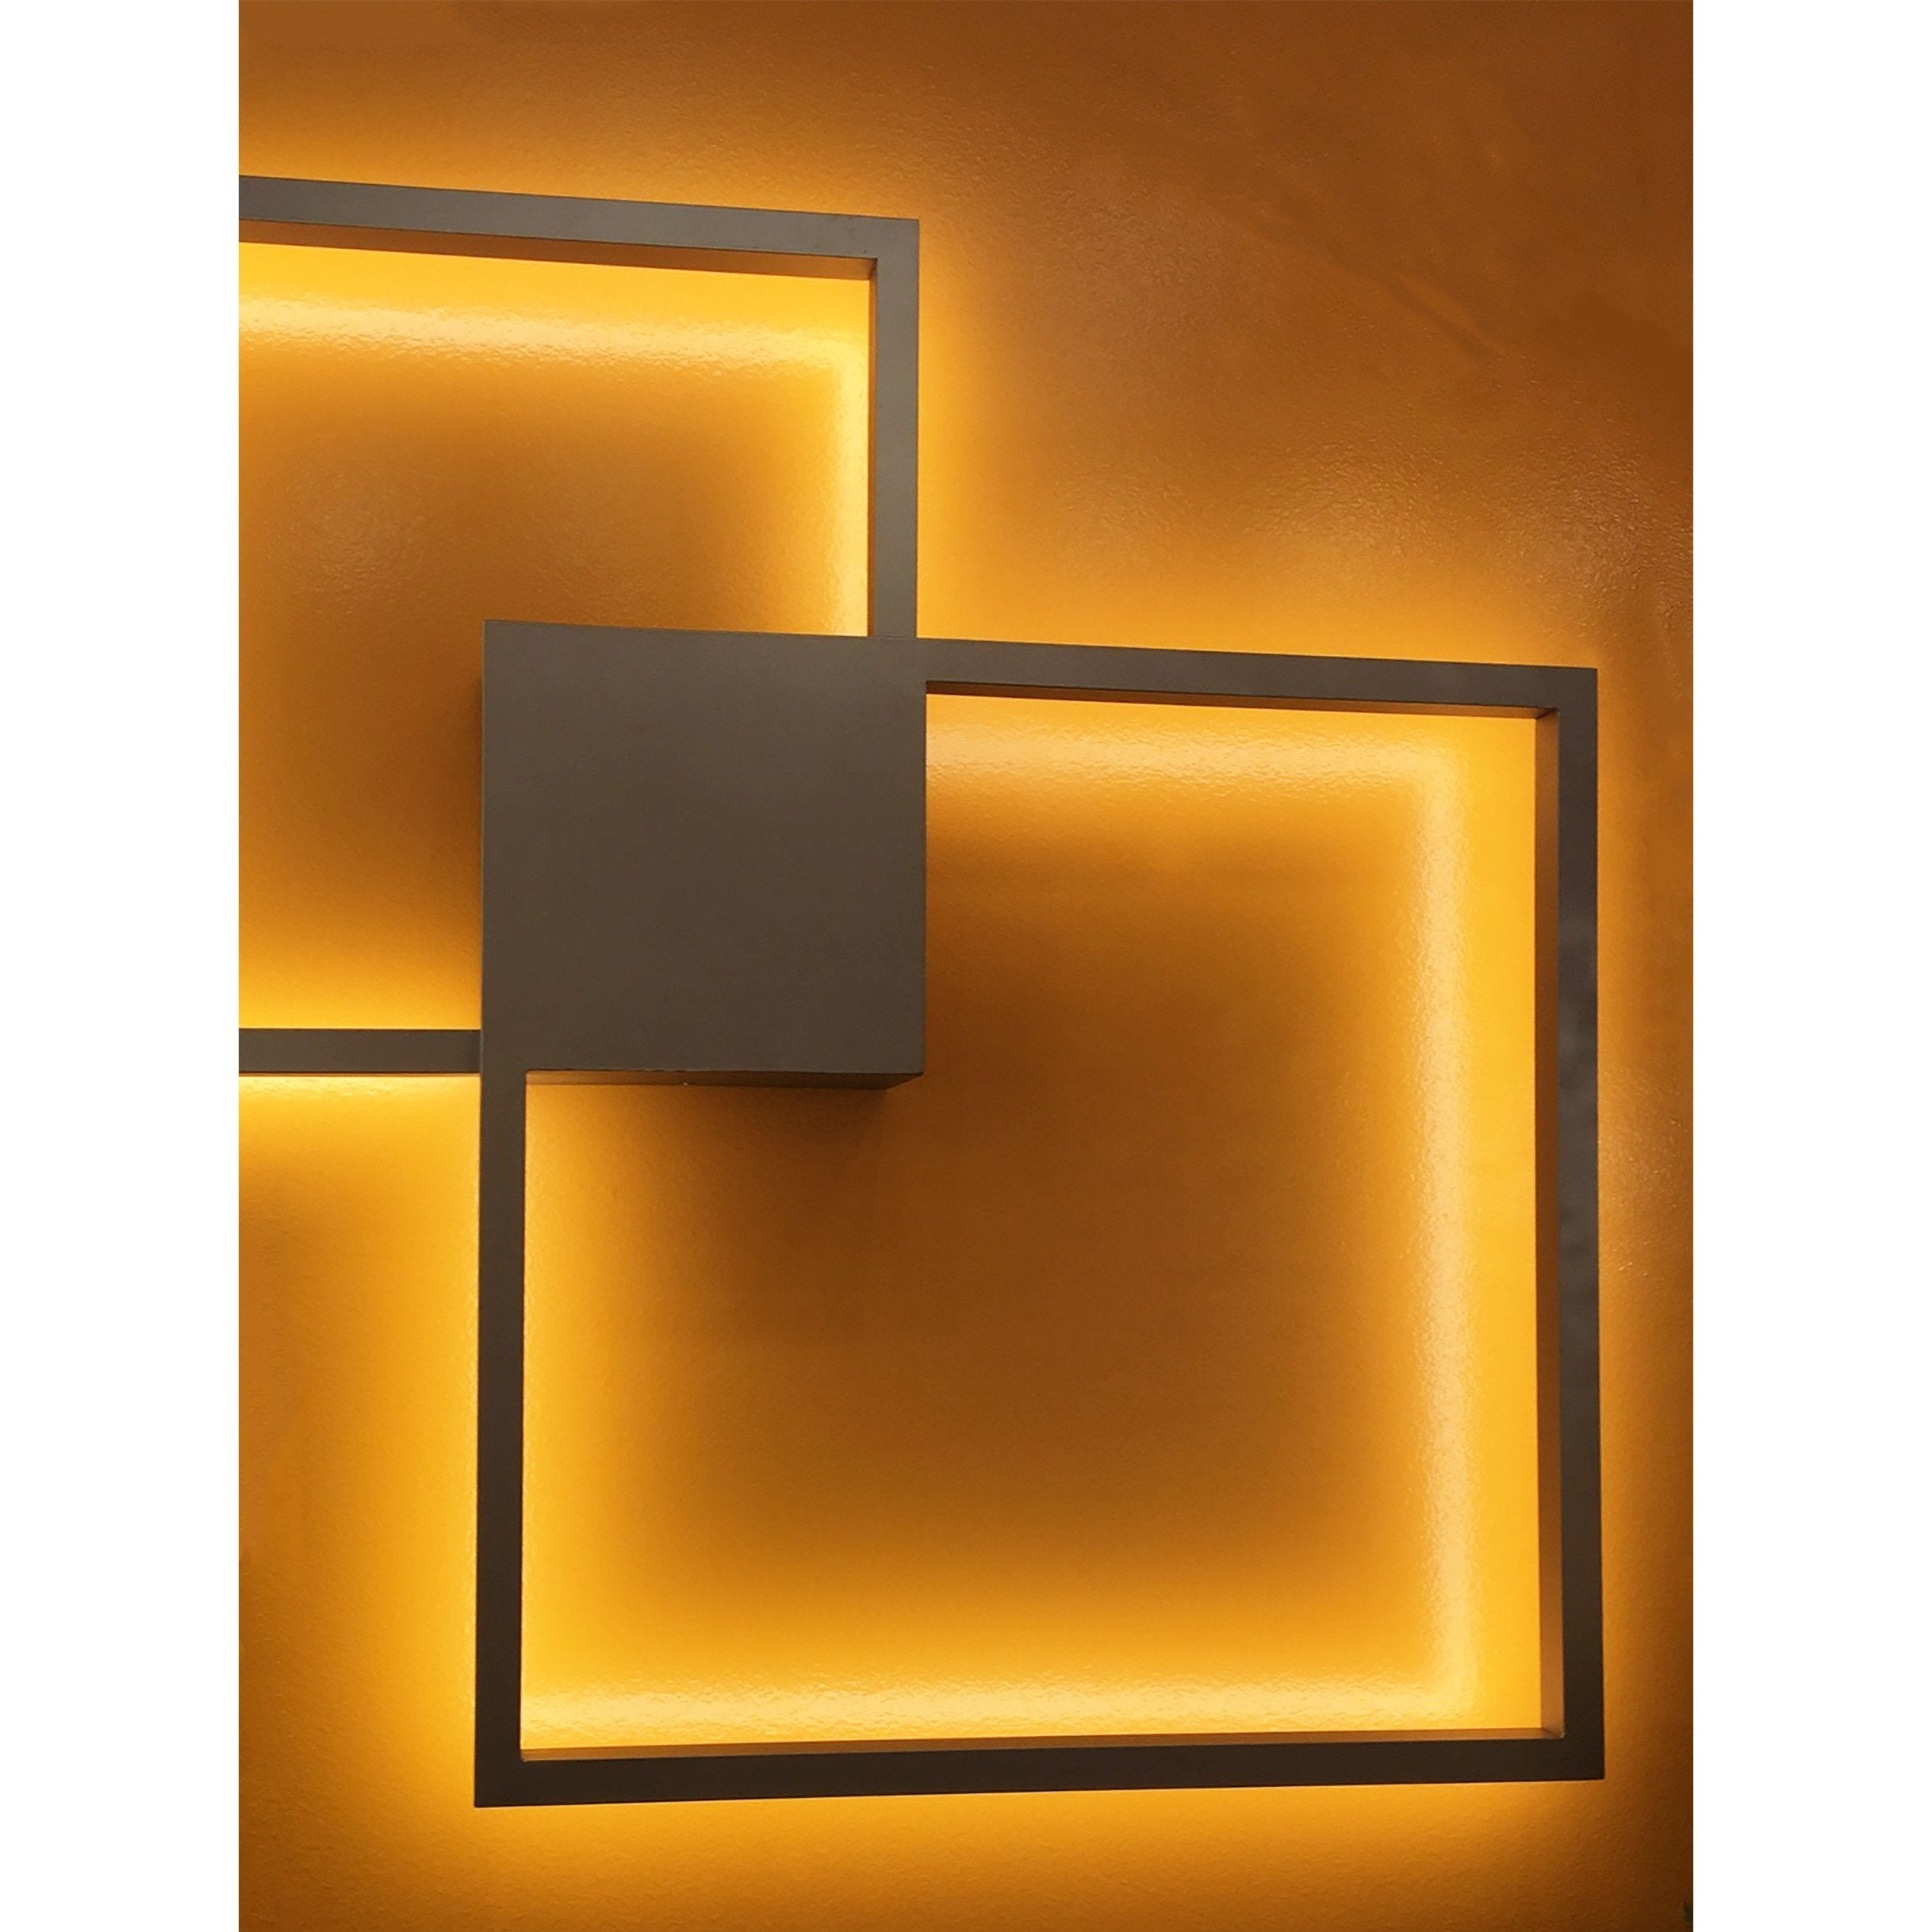 Lámpara de Pared LED de Interior 2 Luces - Monnry